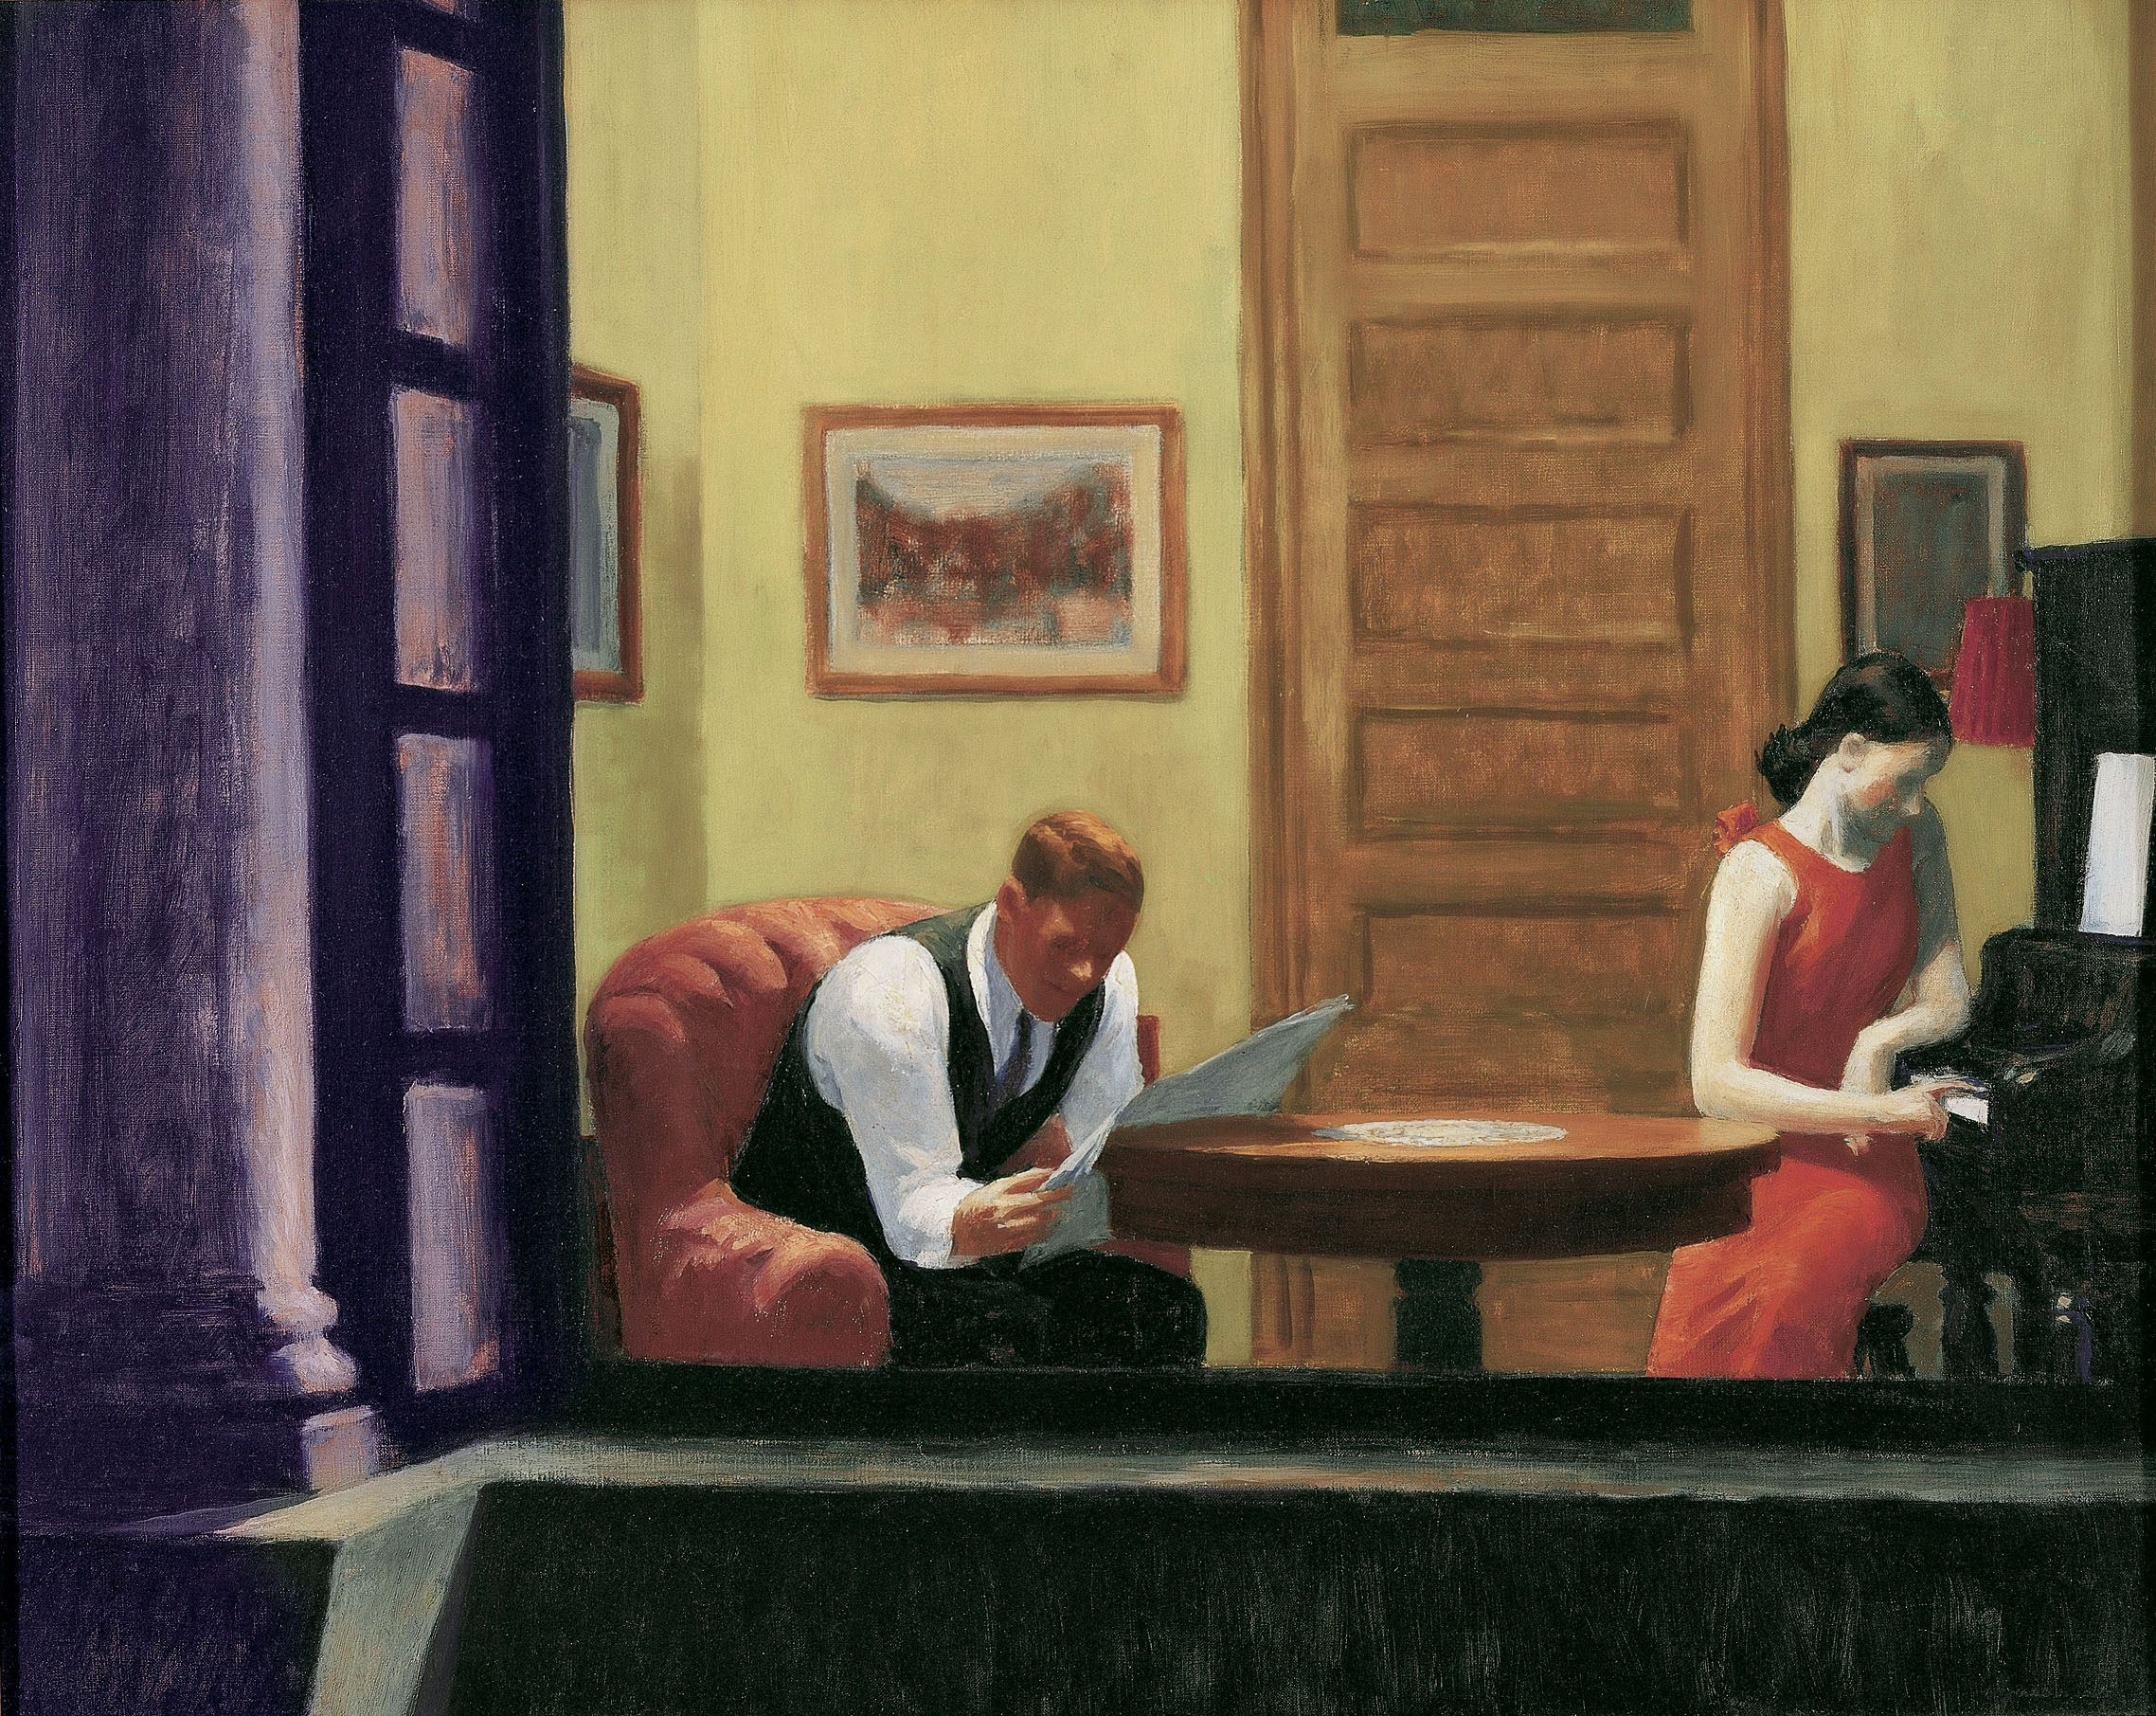 Edward Hopper - Room in New York. Fonte